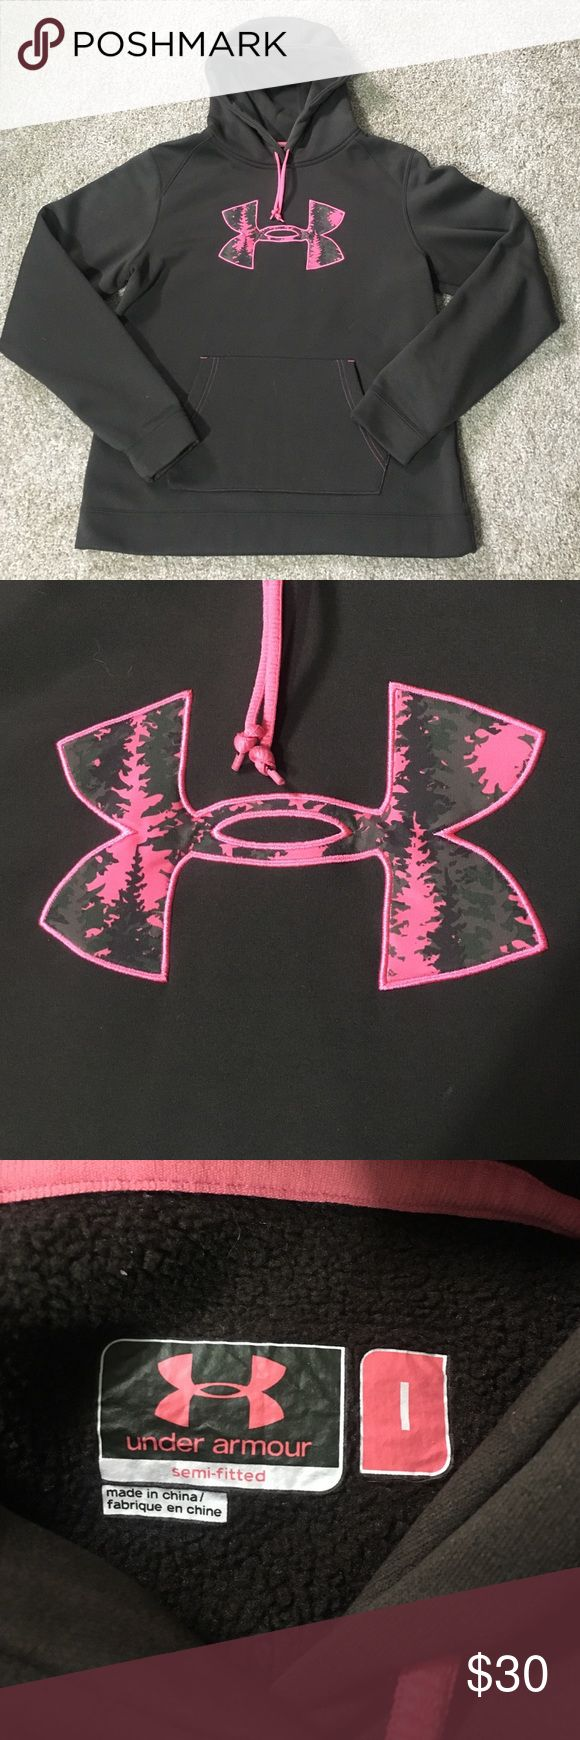 """New w/o tags! Women's Under Armour Hoodie! Dark brown womens hoodie with pink accents! Semi-fitted. The UA symbol has a """"forest"""" theme inside it and looks like pine trees. Very pretty! Received as a Christmas gift and it's been hanging in my closet ever since. Under Armour Tops Sweatshirts & Hoodies"""